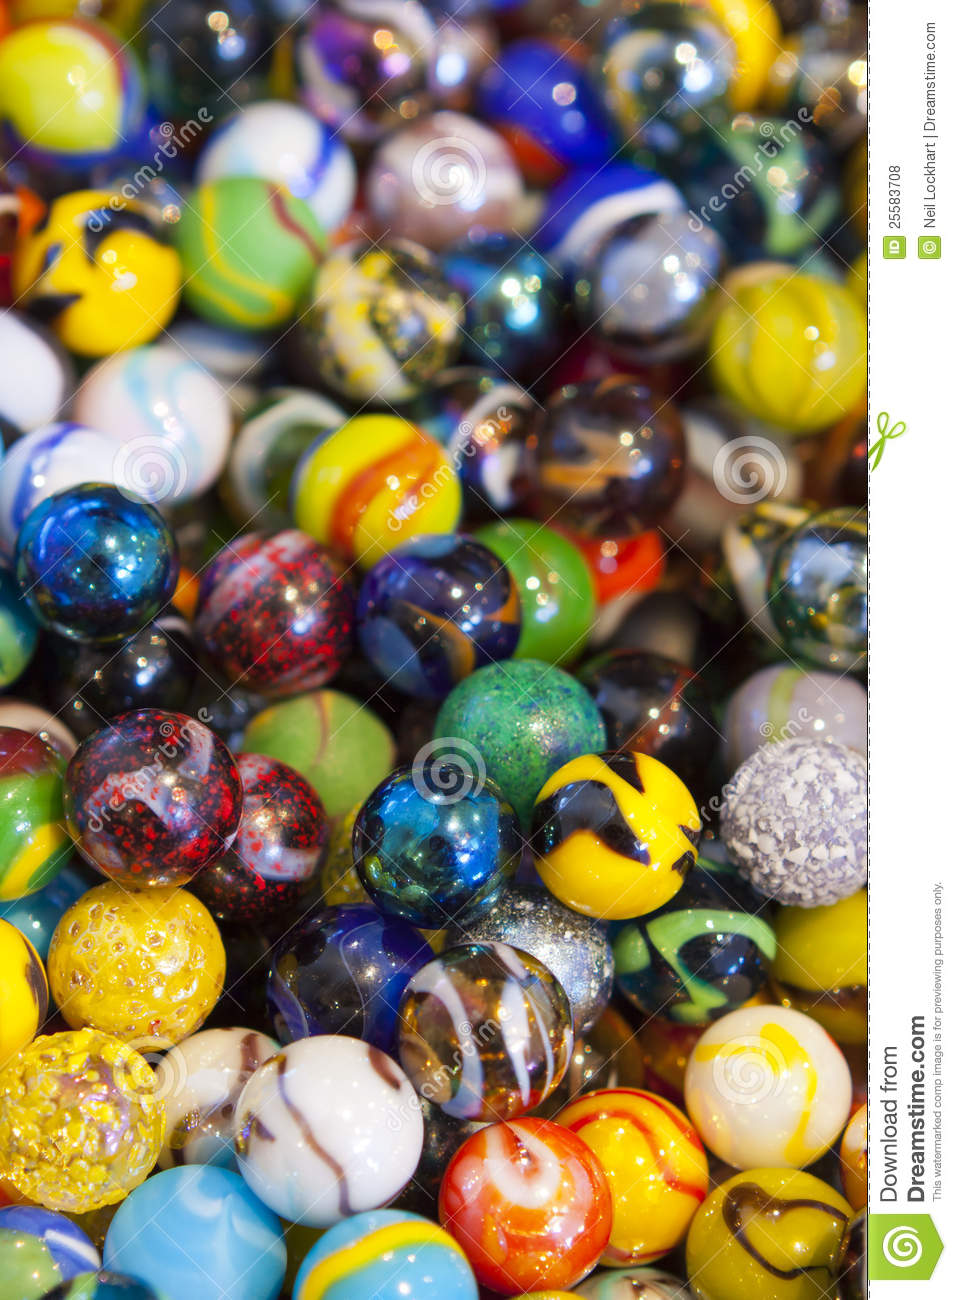 Bright Colored Marbles : Colorful marbles stock photo image of multicolored ball